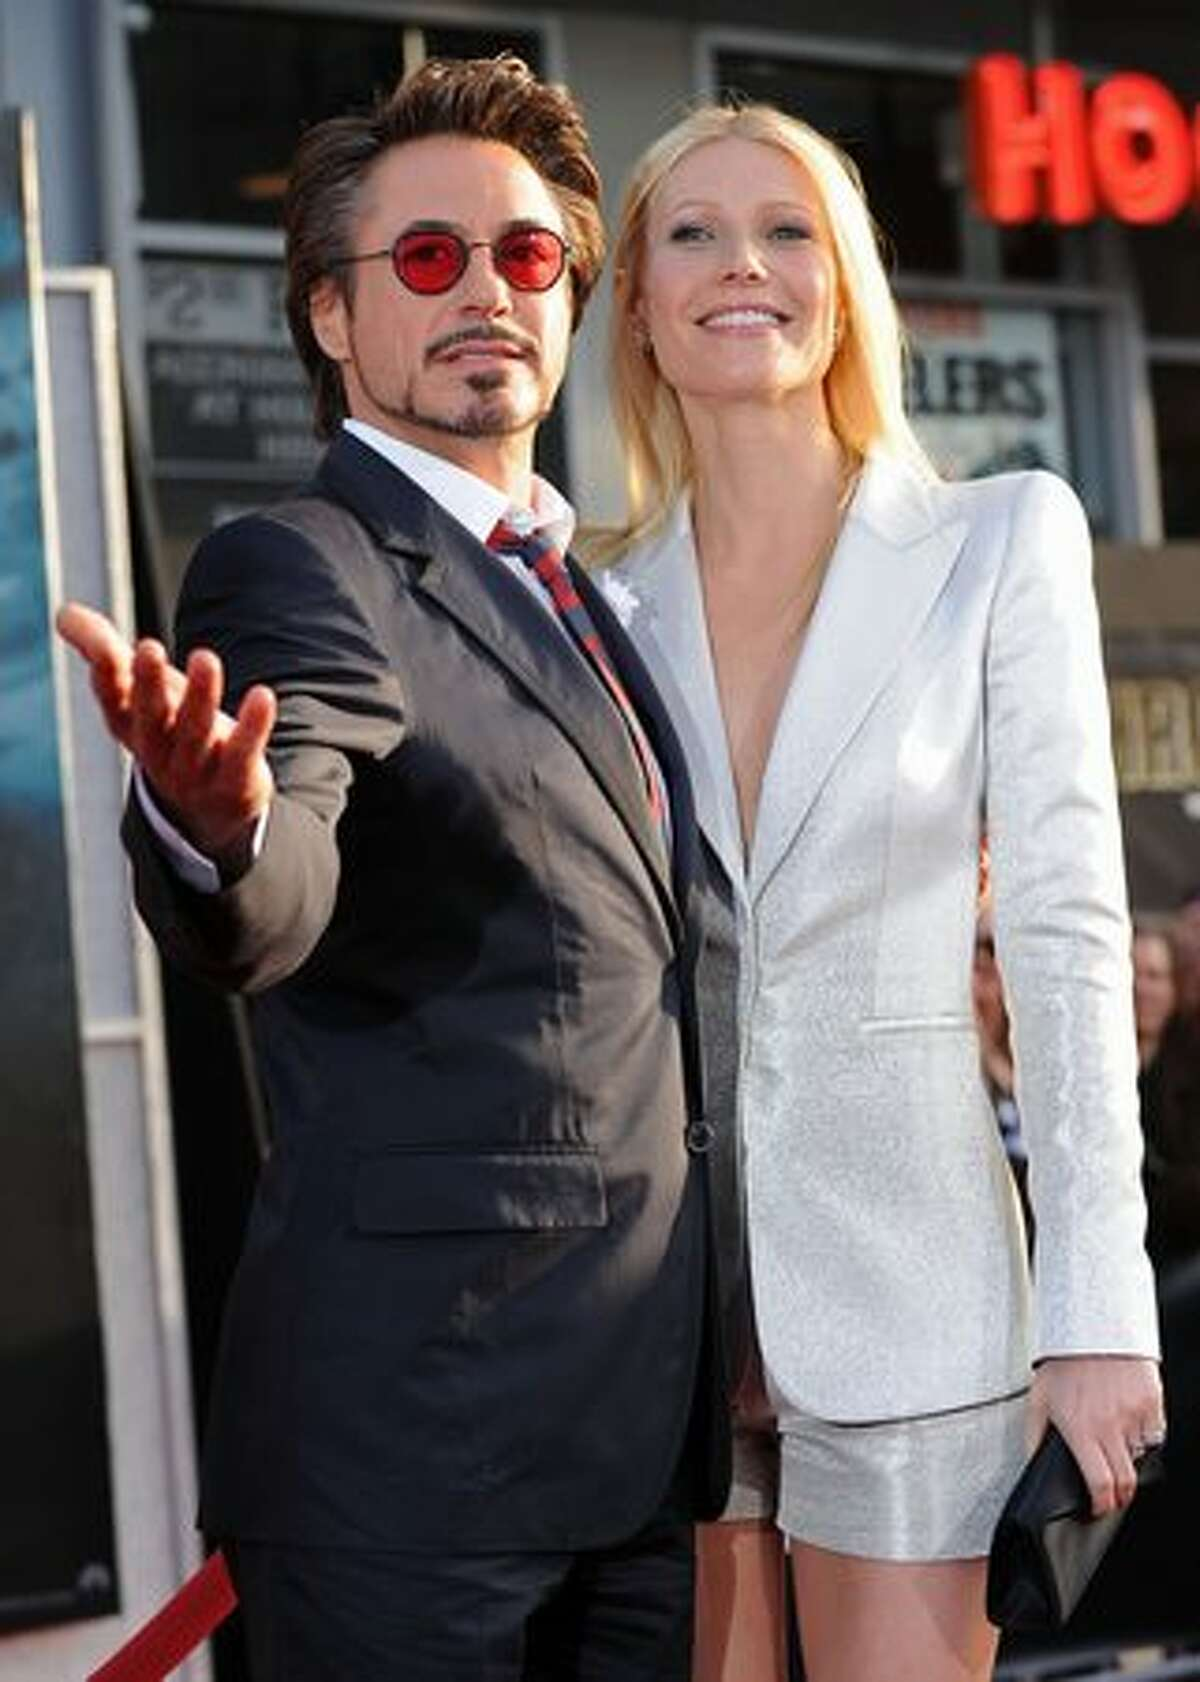 Actor Robert Downey Jr. and actress Gwyneth Paltrow arrive at the world premiere of Paramount Pictures and Marvel Entertainment's